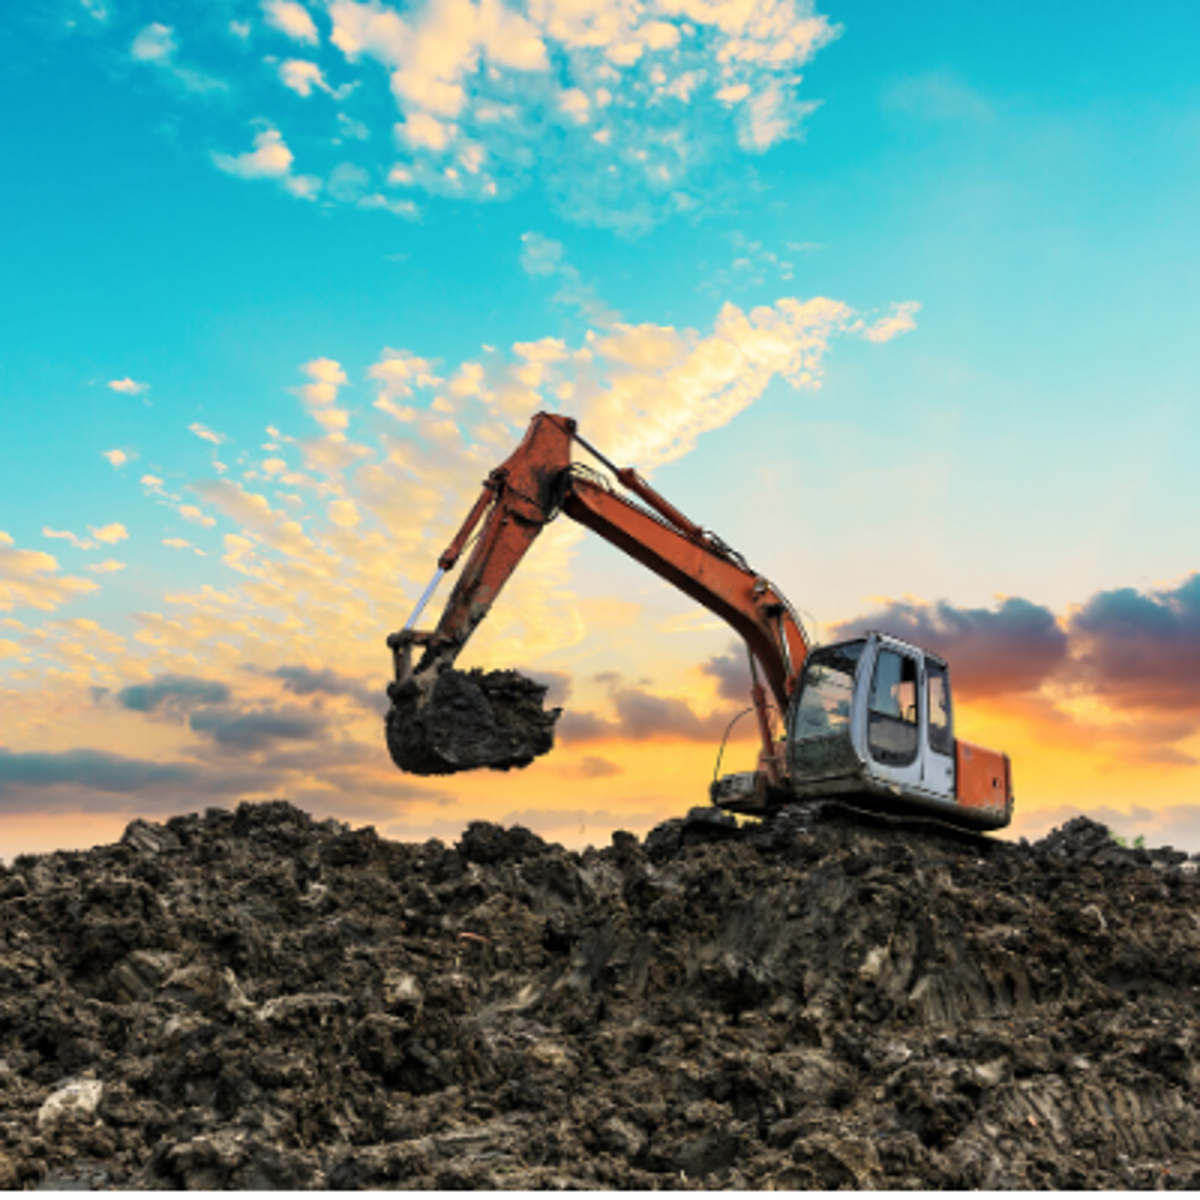 What's involved in the excavation project?